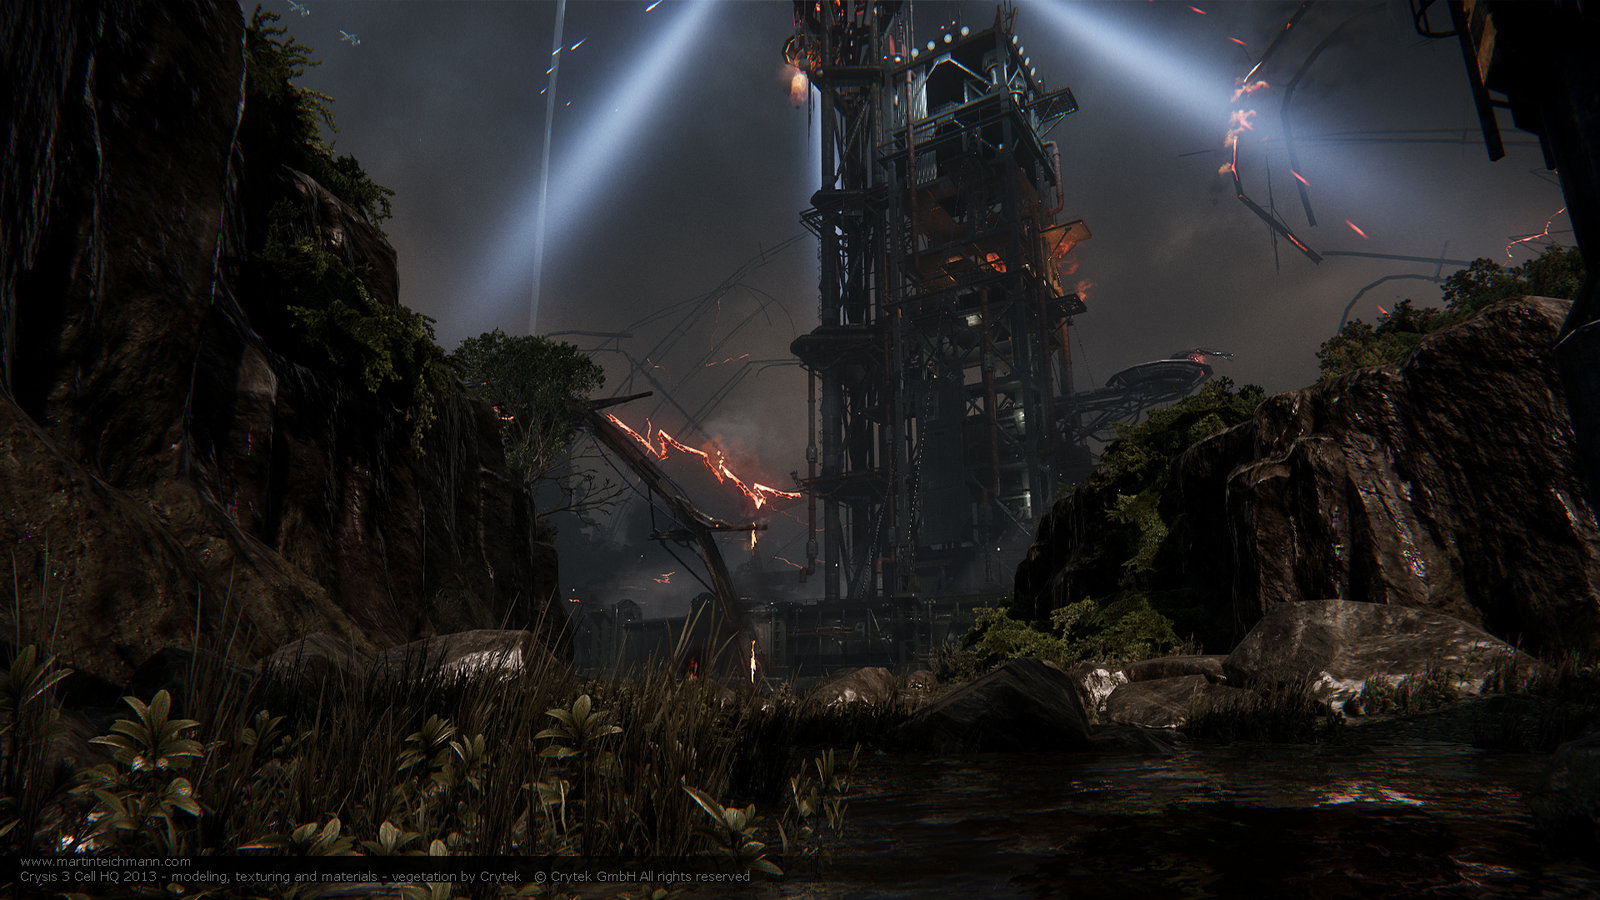 Crysis 3 Cell HQ - Red Star Rising